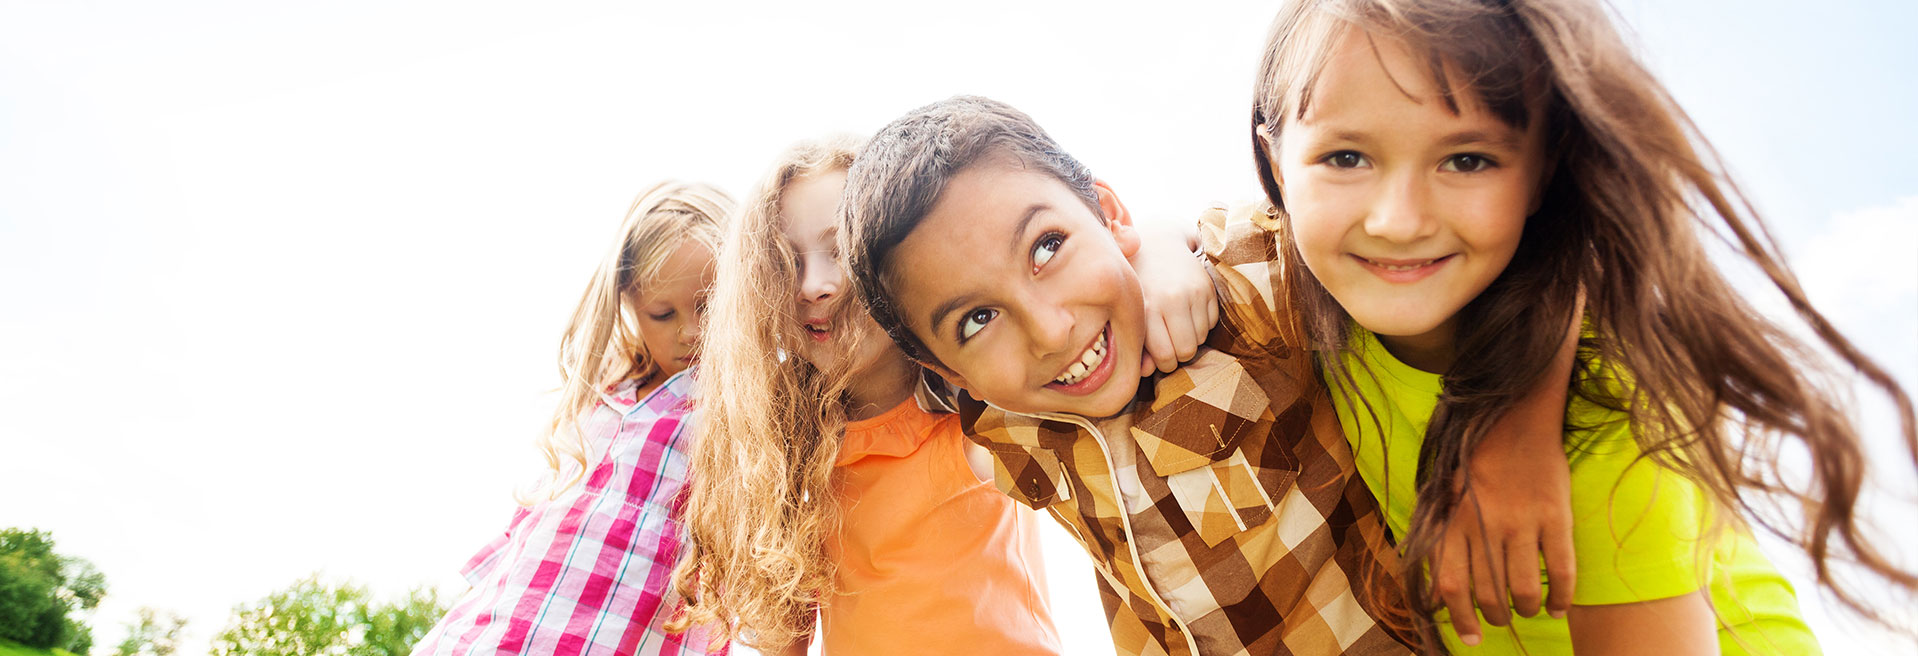 Kids smiling - Pediatric Dentist in San Angelo, TX